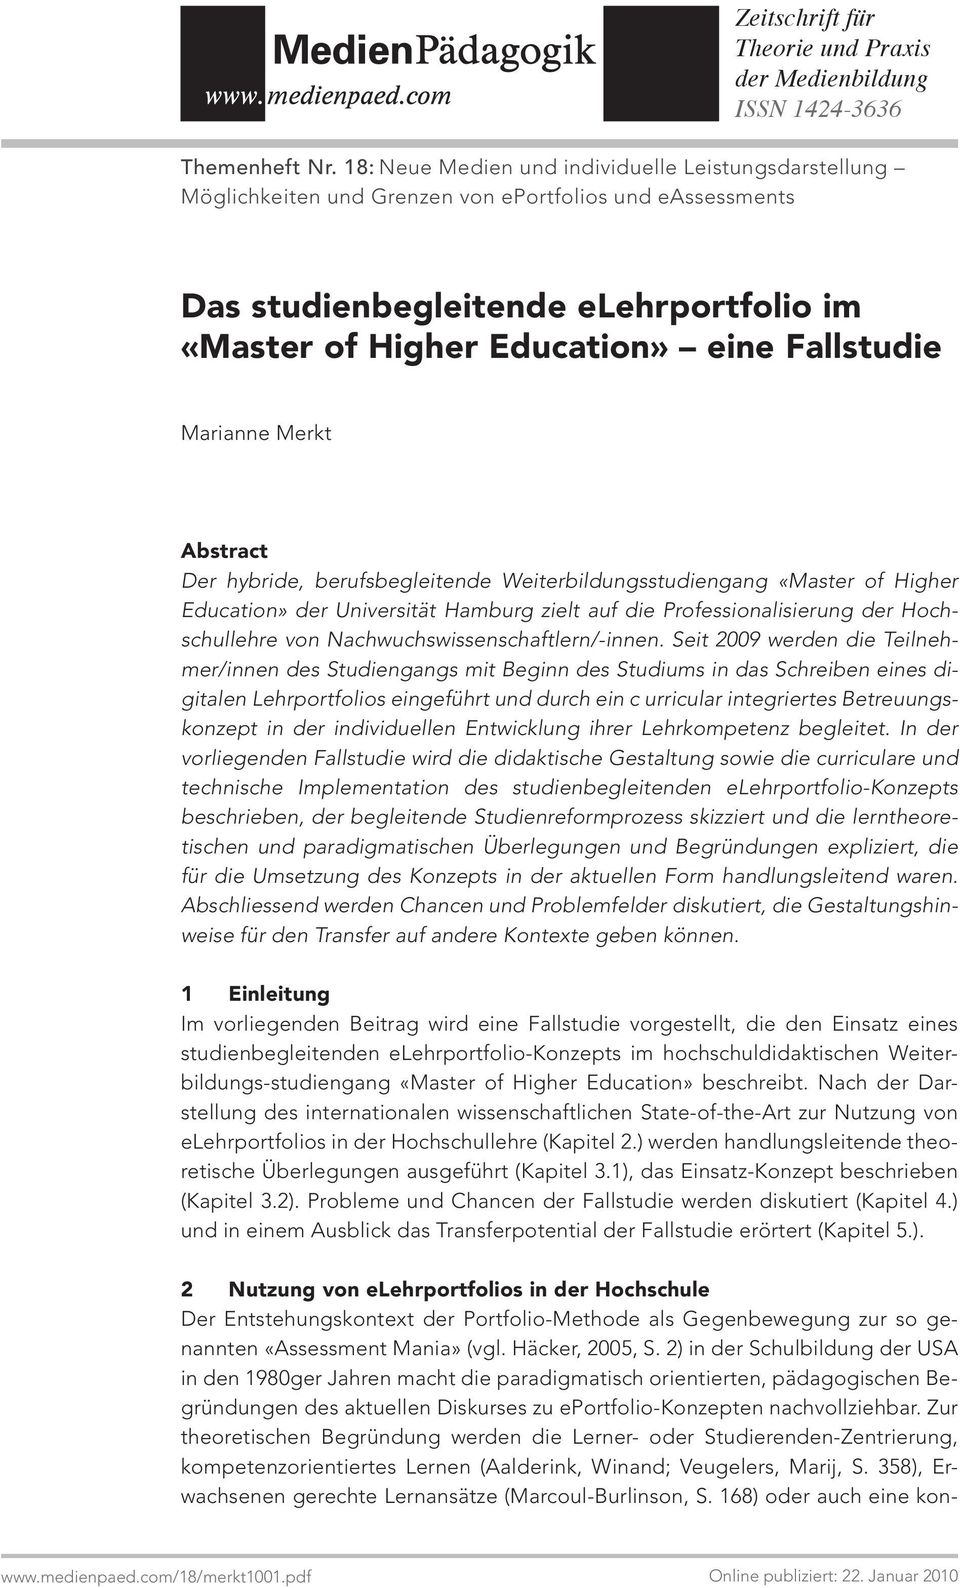 Marianne Merkt Abstract Der hybride, berufsbegleitende Weiterbildungsstudiengang «Master of Higher Education» der Universität Hamburg zielt auf die Professionalisierung der Hochschullehre von